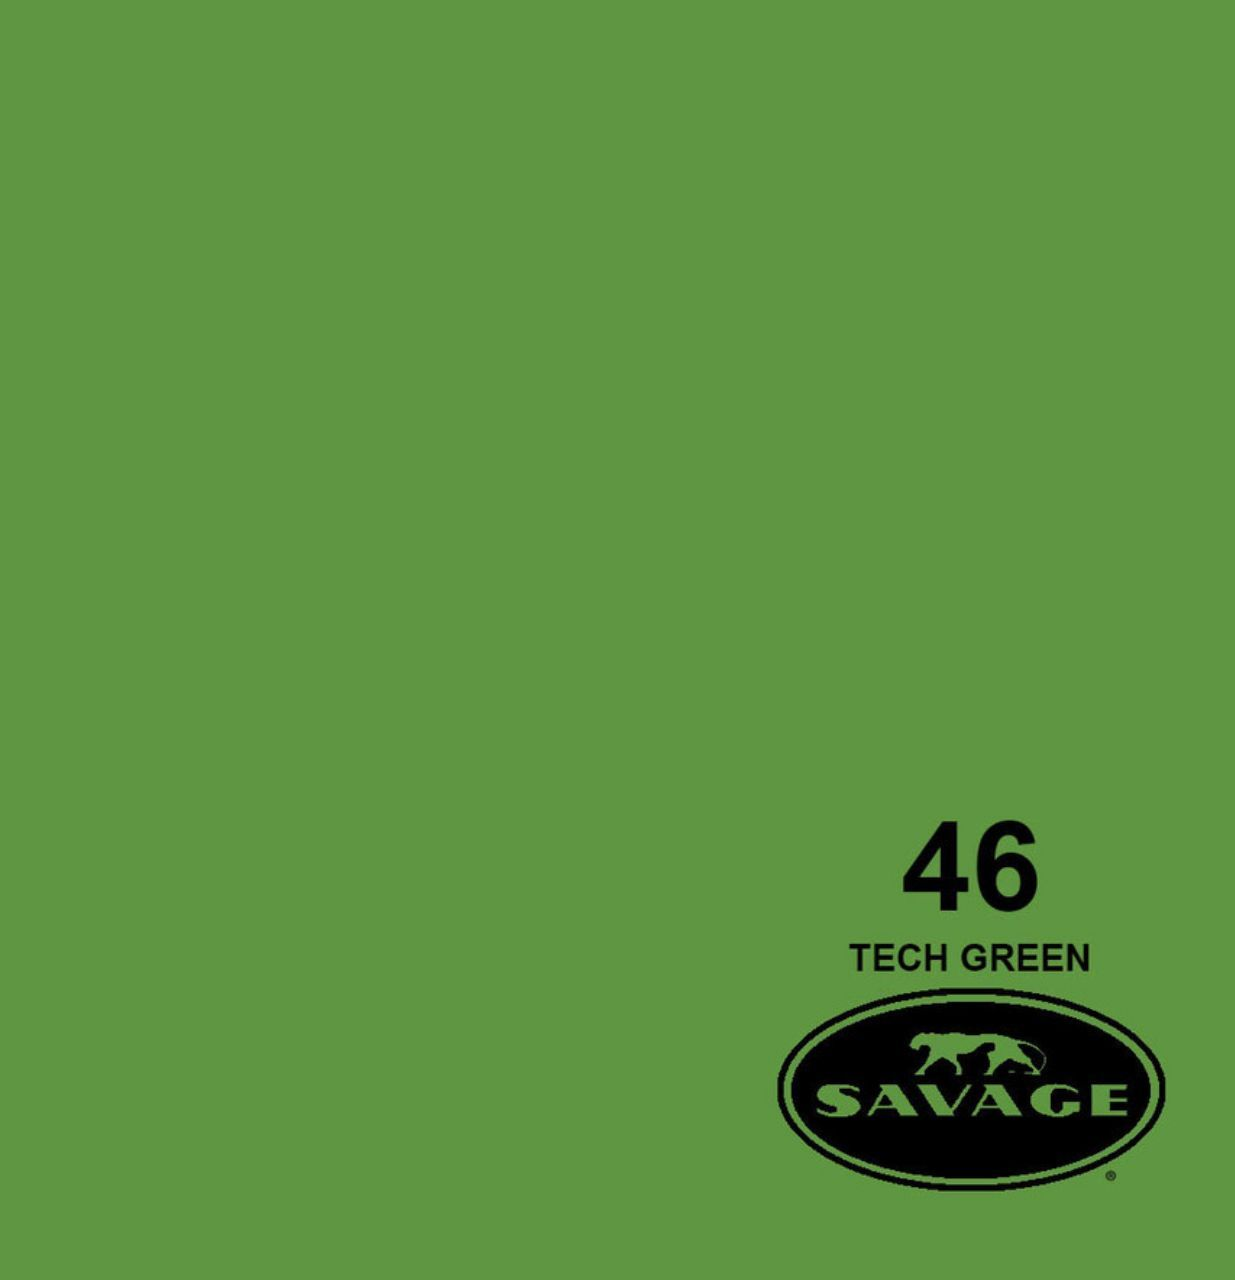 فون کاغذی Savage #46 tech green 11*3